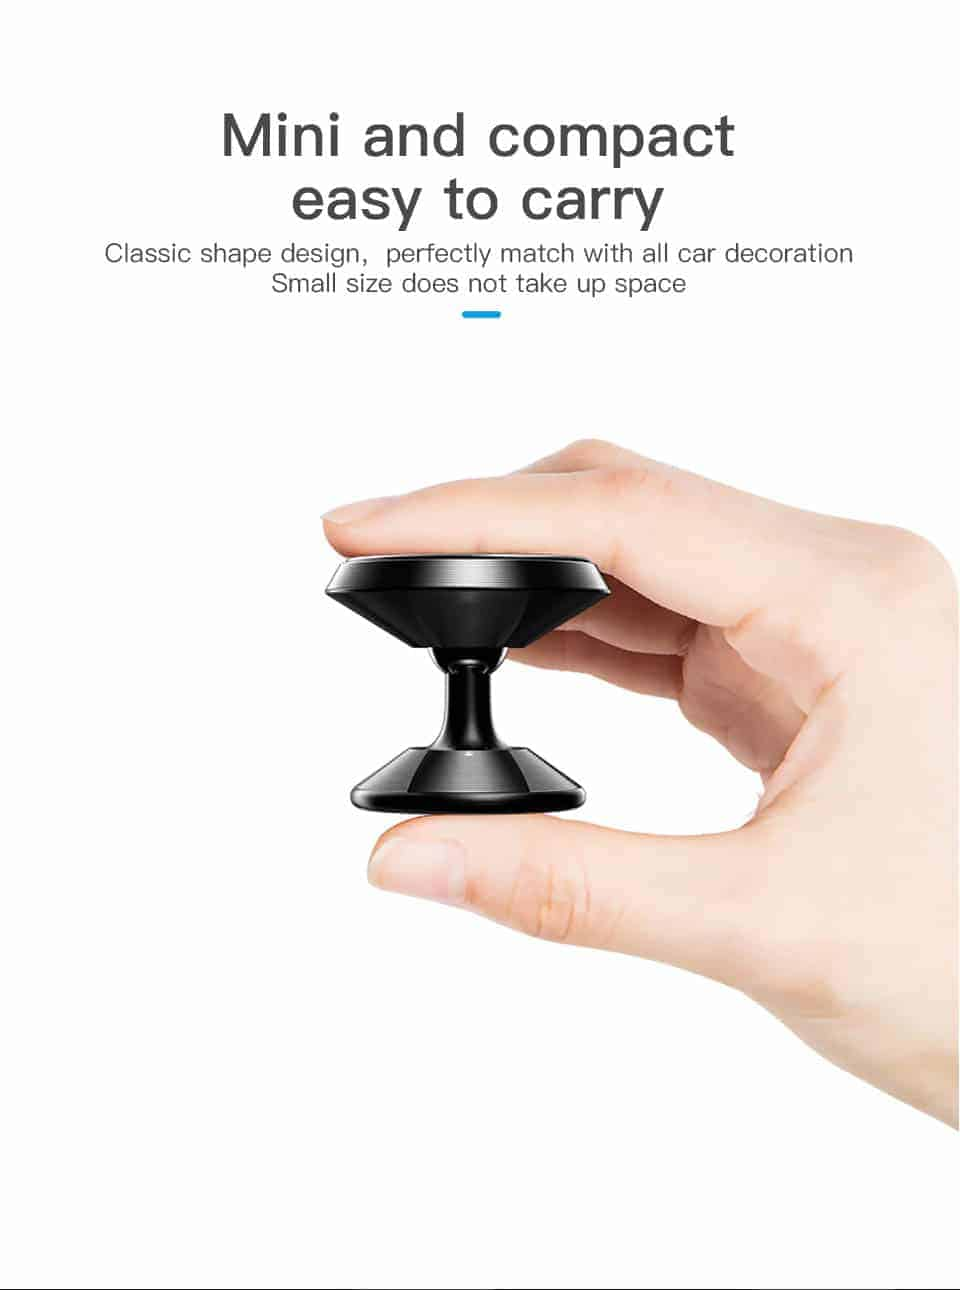 KUULAA Car Phone Holder Magnetic mini and compact easy to carry